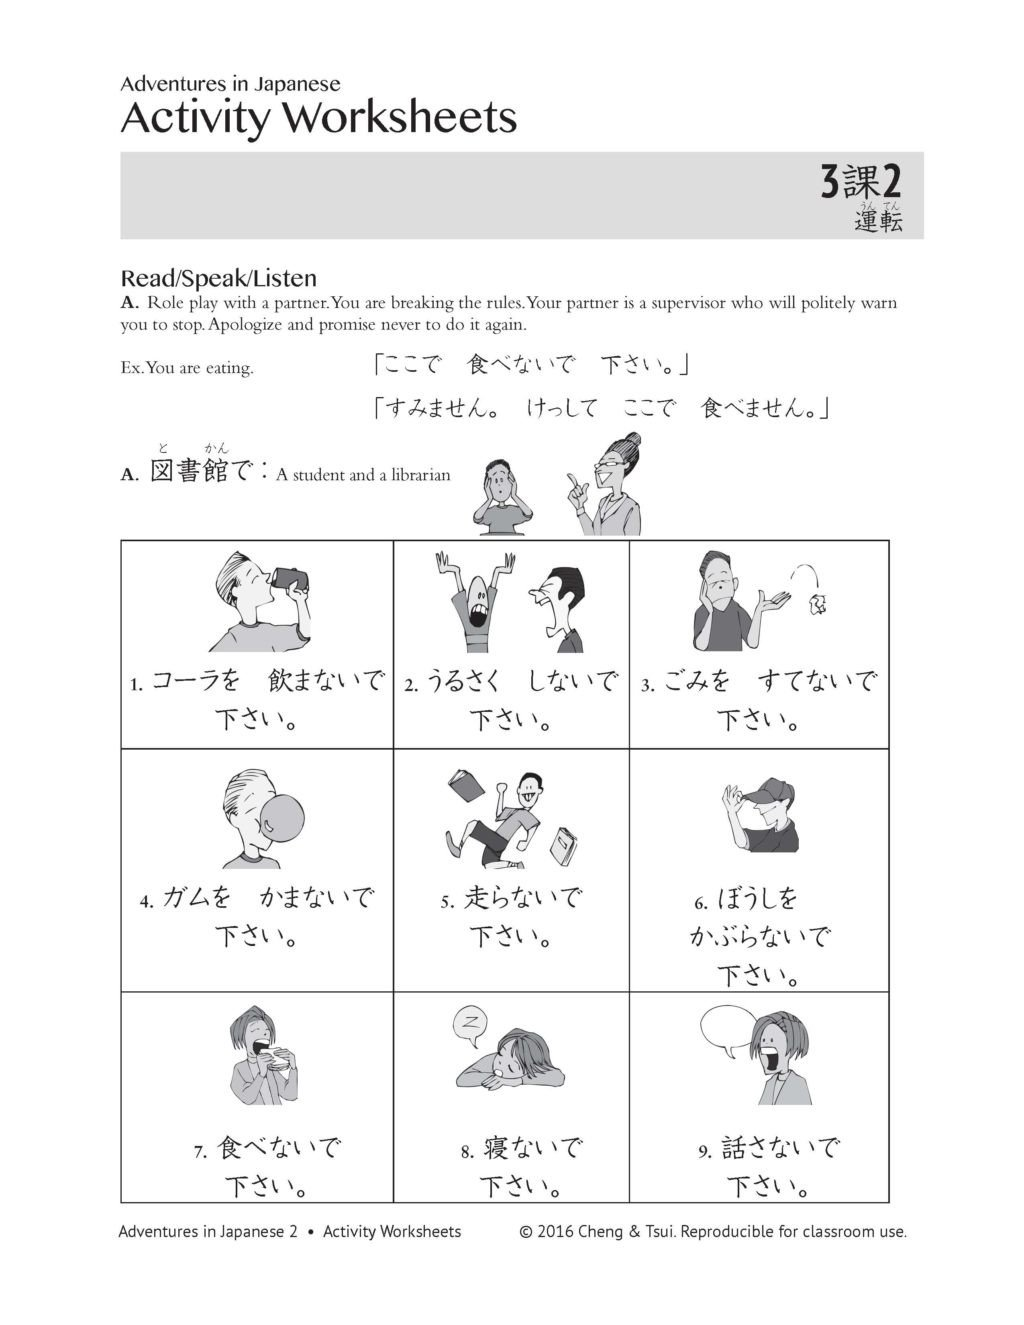 vol 2 activity worksheets adventures in japanese